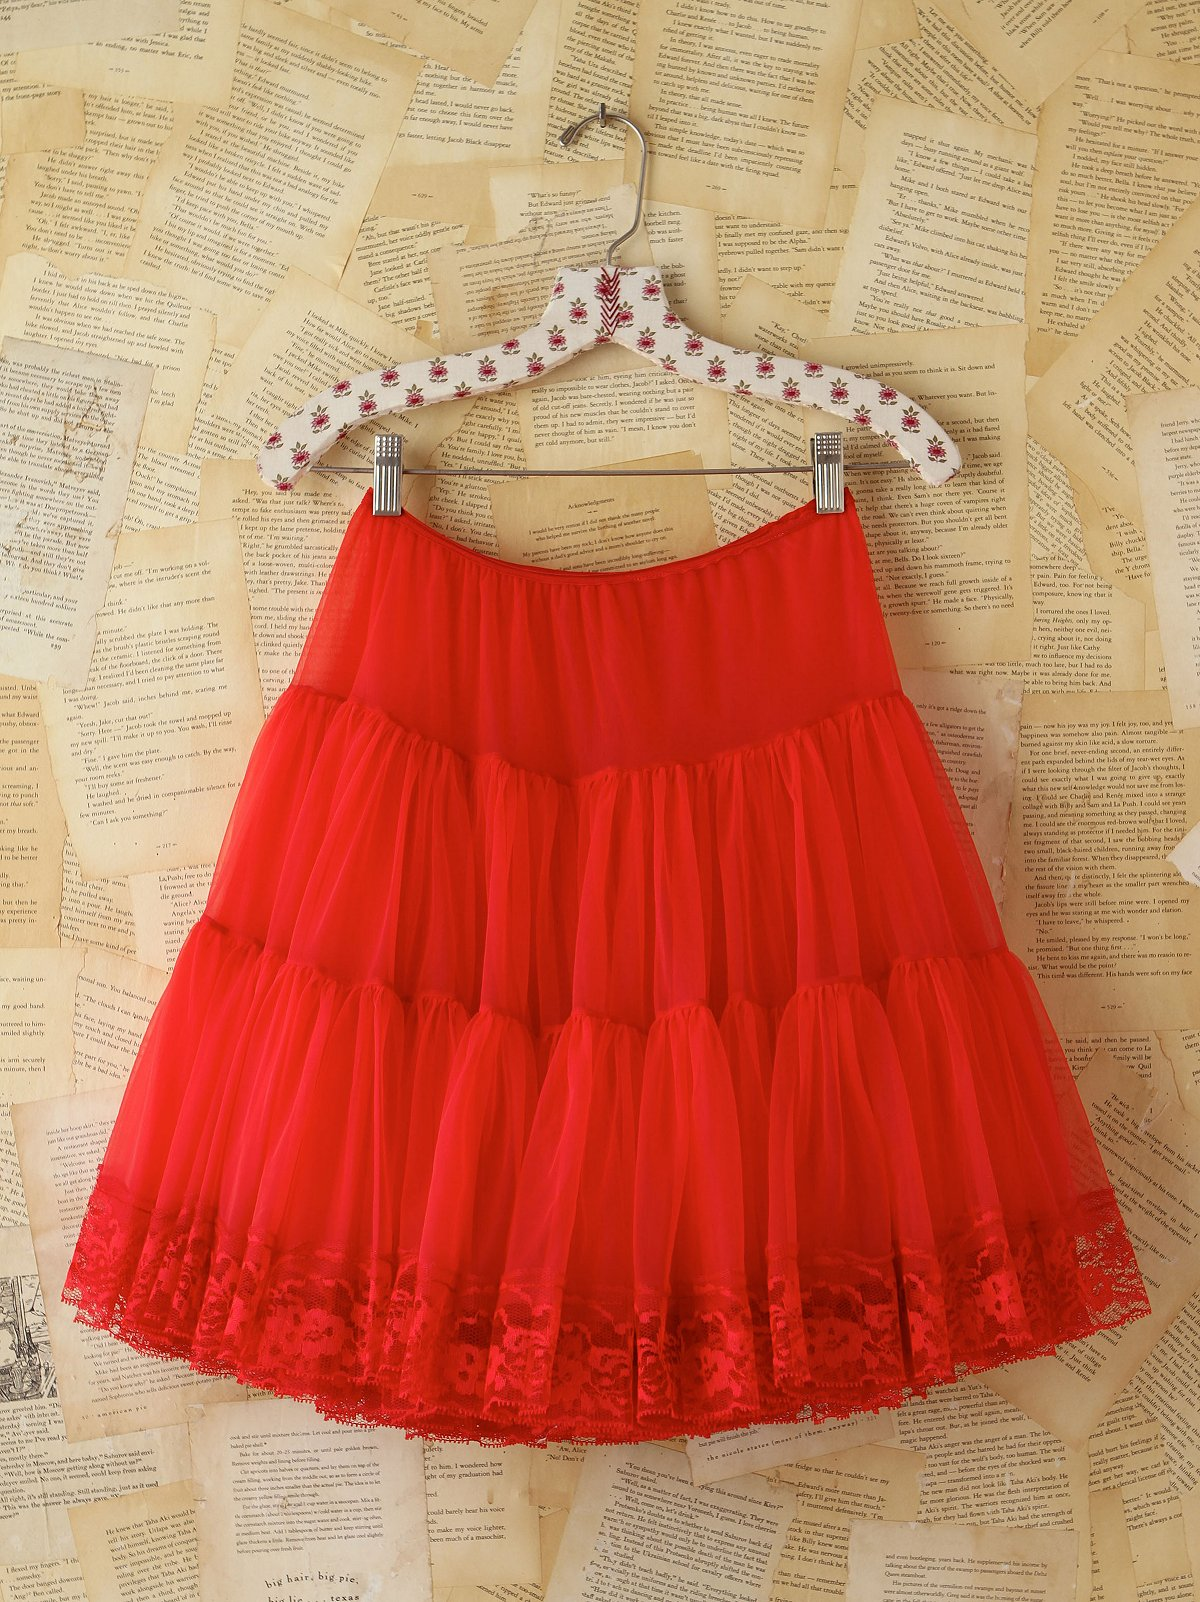 Vintage Red Tiered Skirt